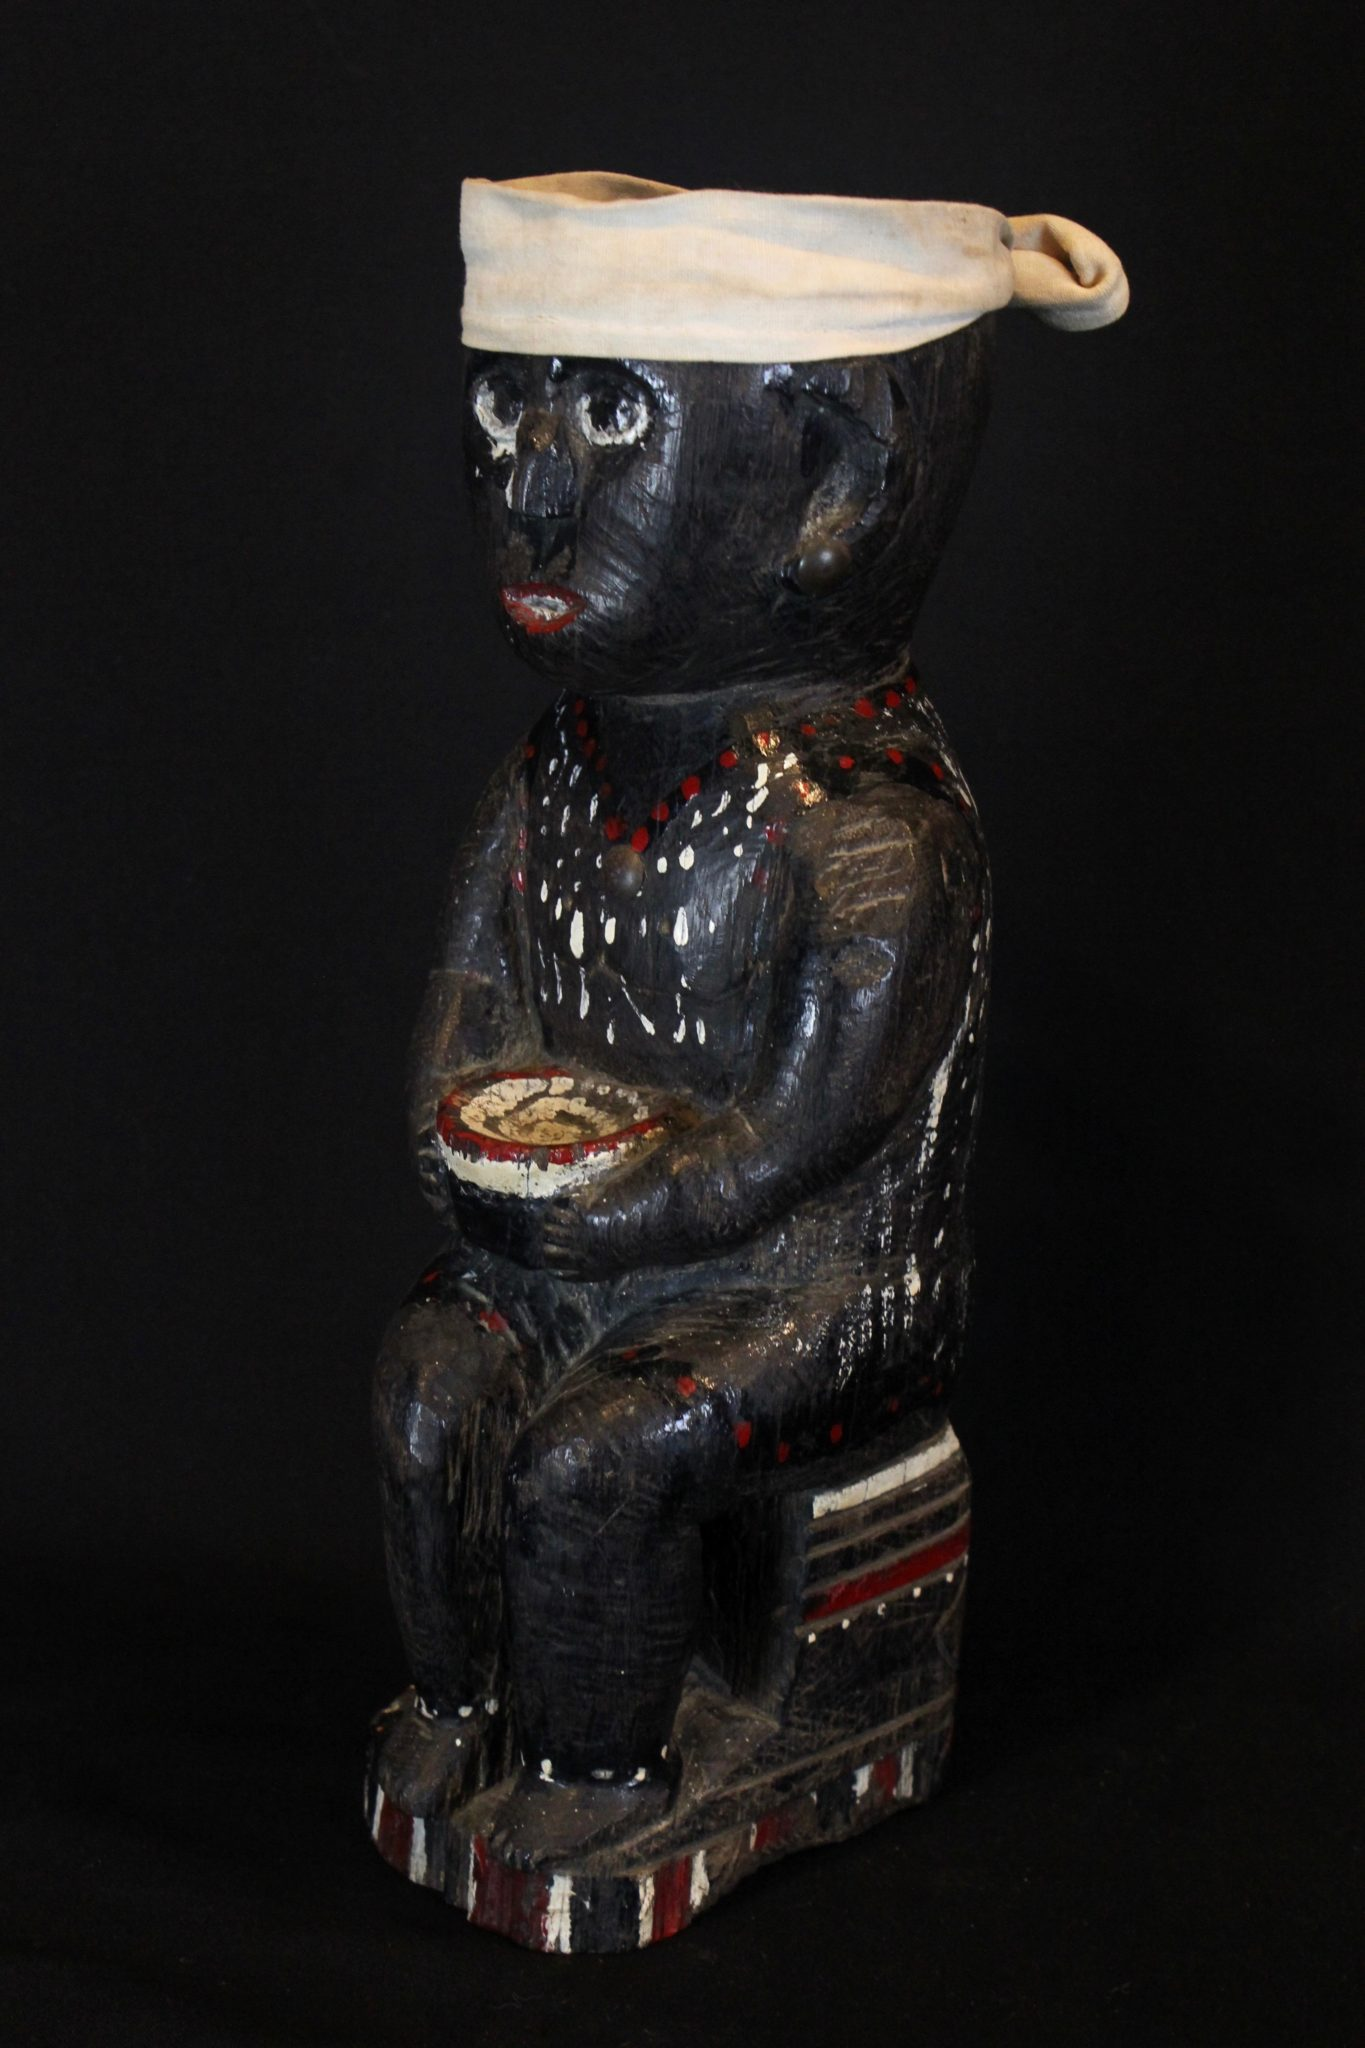 "Medicine Man Effigy Betel Nut Offering Figure, Kalimantan, Borneo, Indonesia, Dayak tribe, Early 20th c, Wood, cloth, paint Used to hold betel nuts as a ritual offering to the deities. 13"" x 4 ½"" x 5"", $1200."